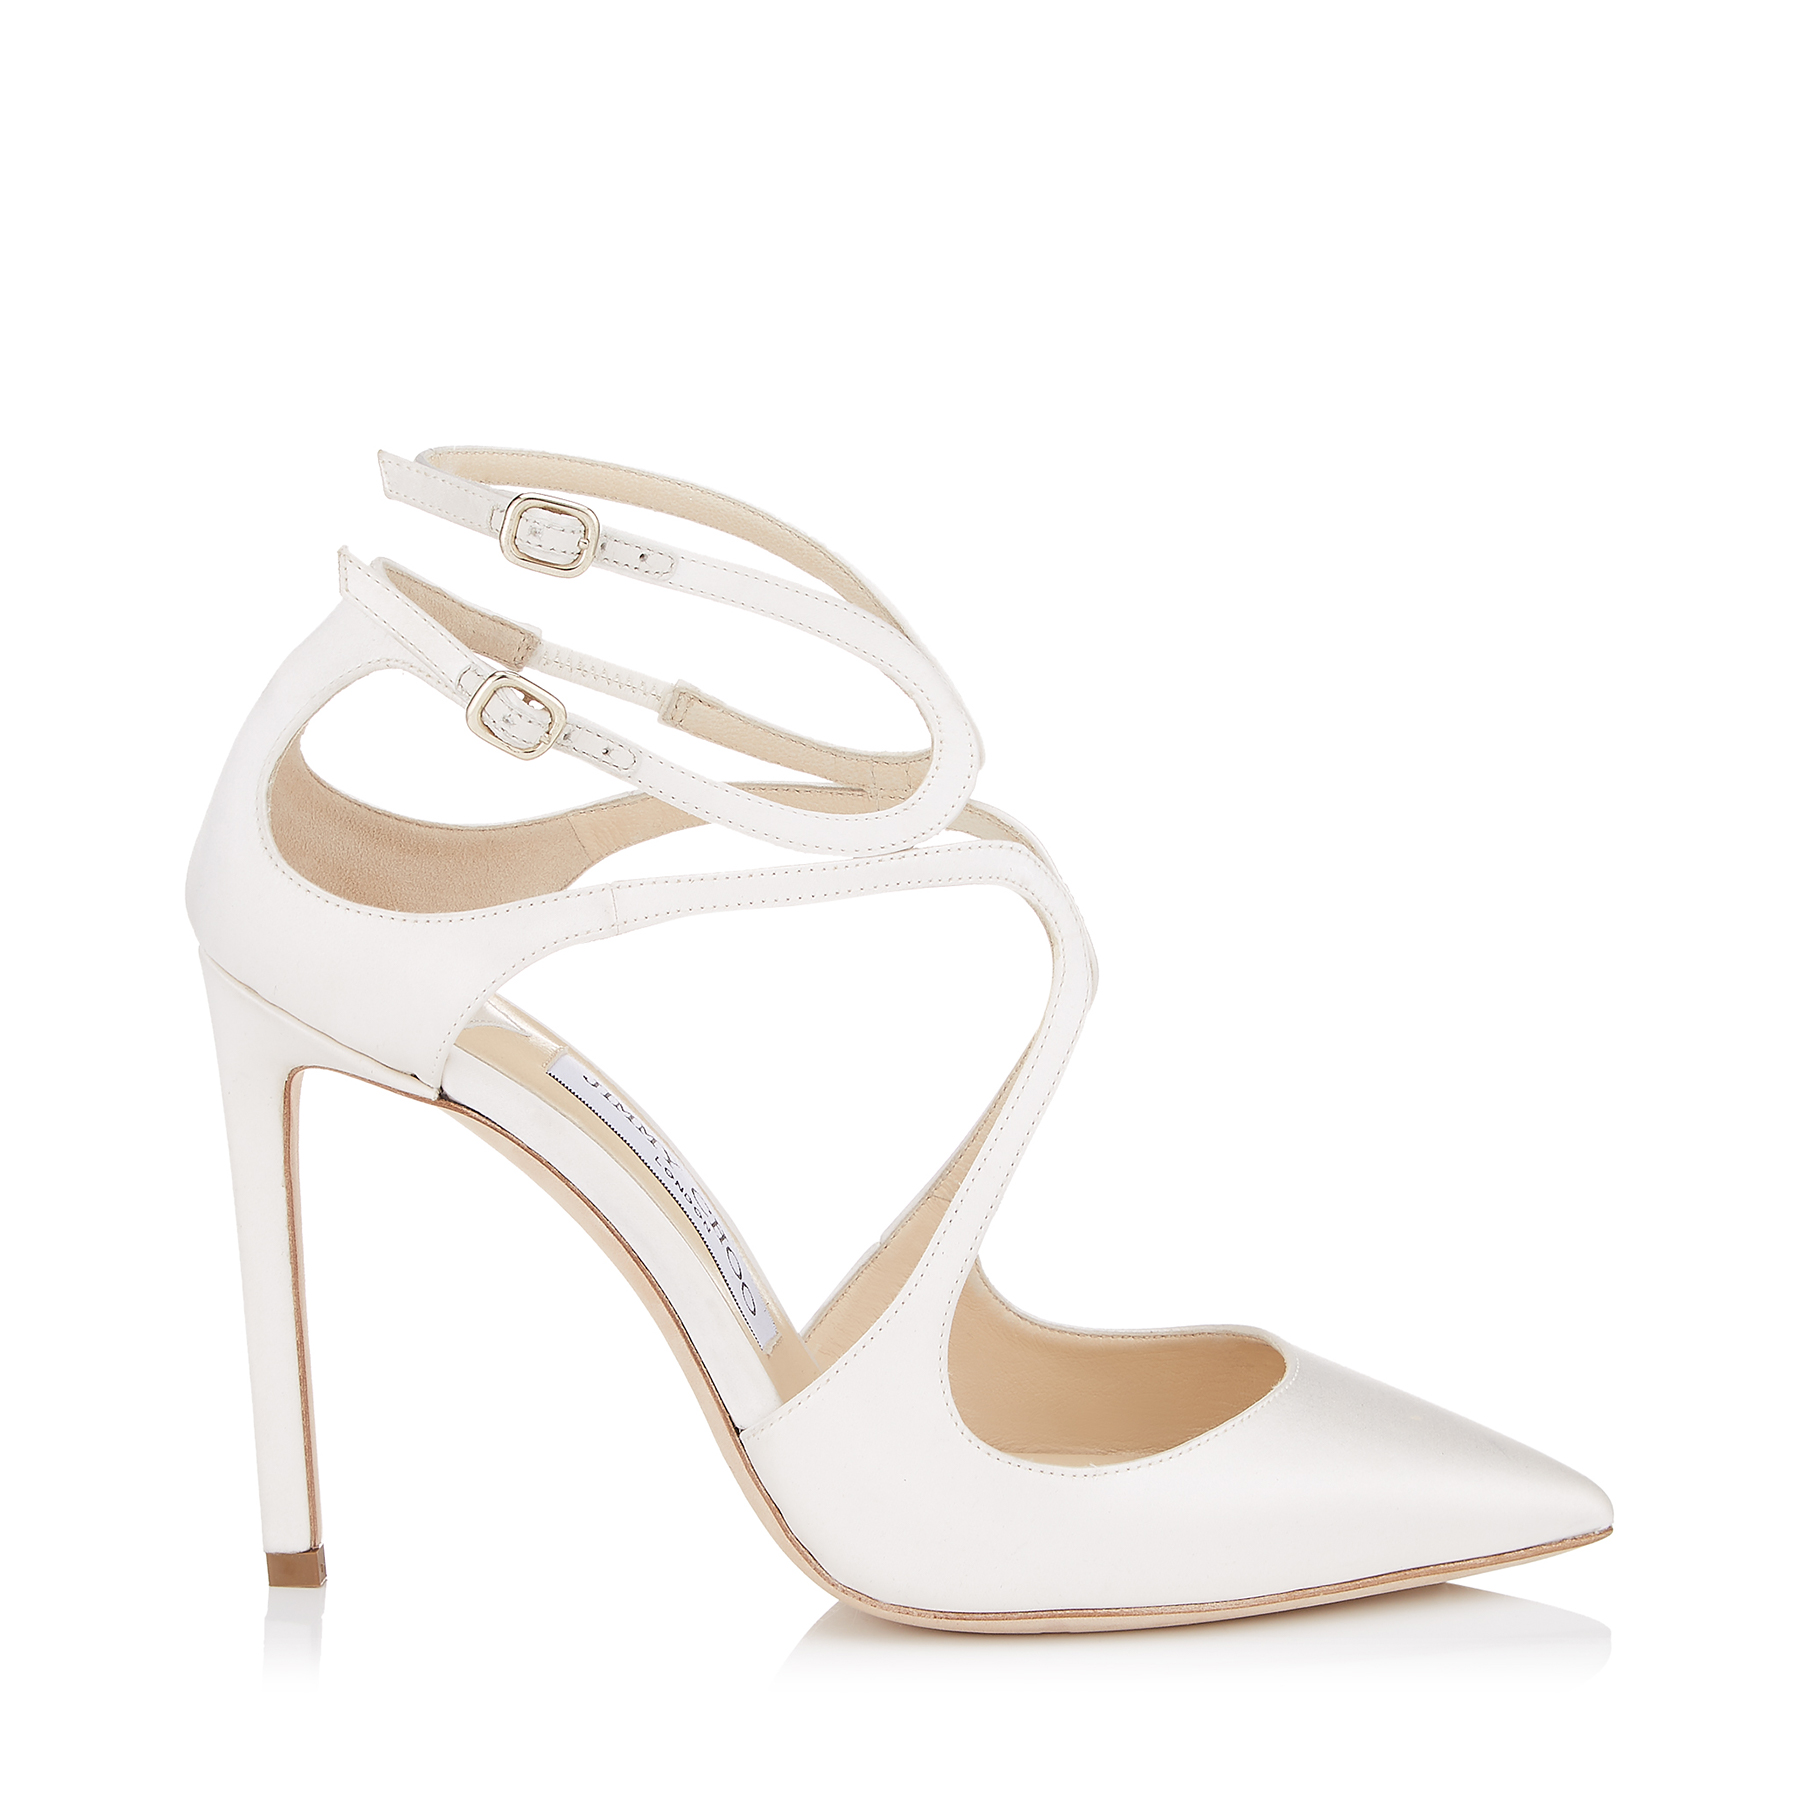 LANCER 100 Ivory Satin Pointy Toe Pumps by Jimmy Choo